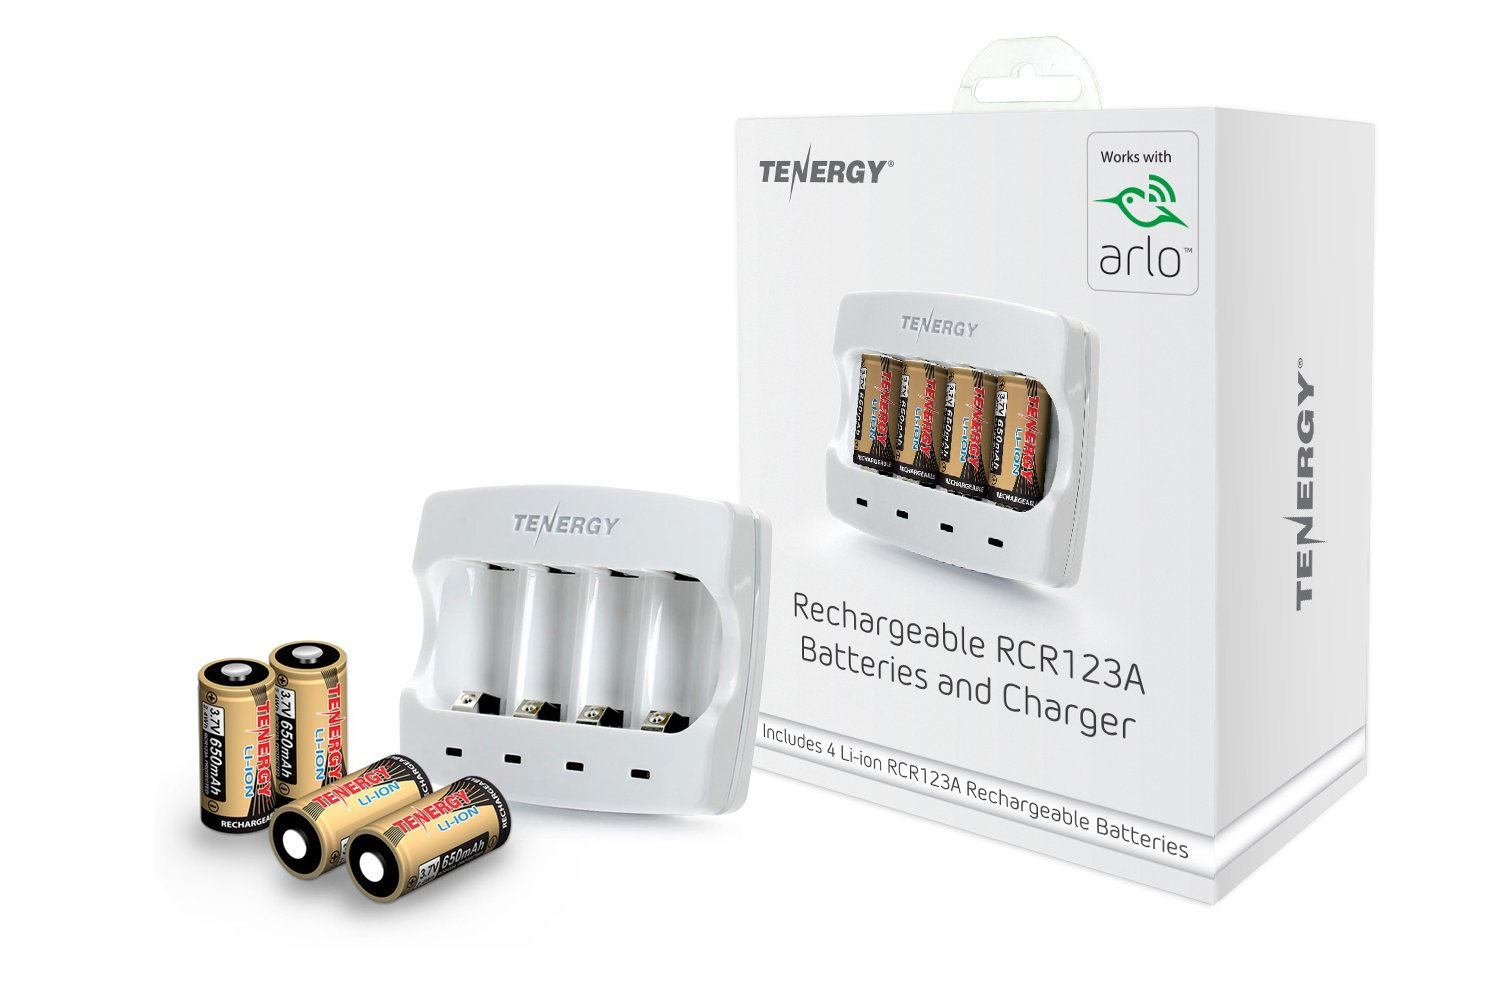 Arlo Certified: Tenergy 3.7V Arlo Battery Charger for Arlo Wireless Security Cameras (VMC3030/3200/3330/3430/3530) Fast Charger with 4-Pack 650mAh RCR123A Li-ion Rechargeable Batteries UL UN Certified by Tenergy